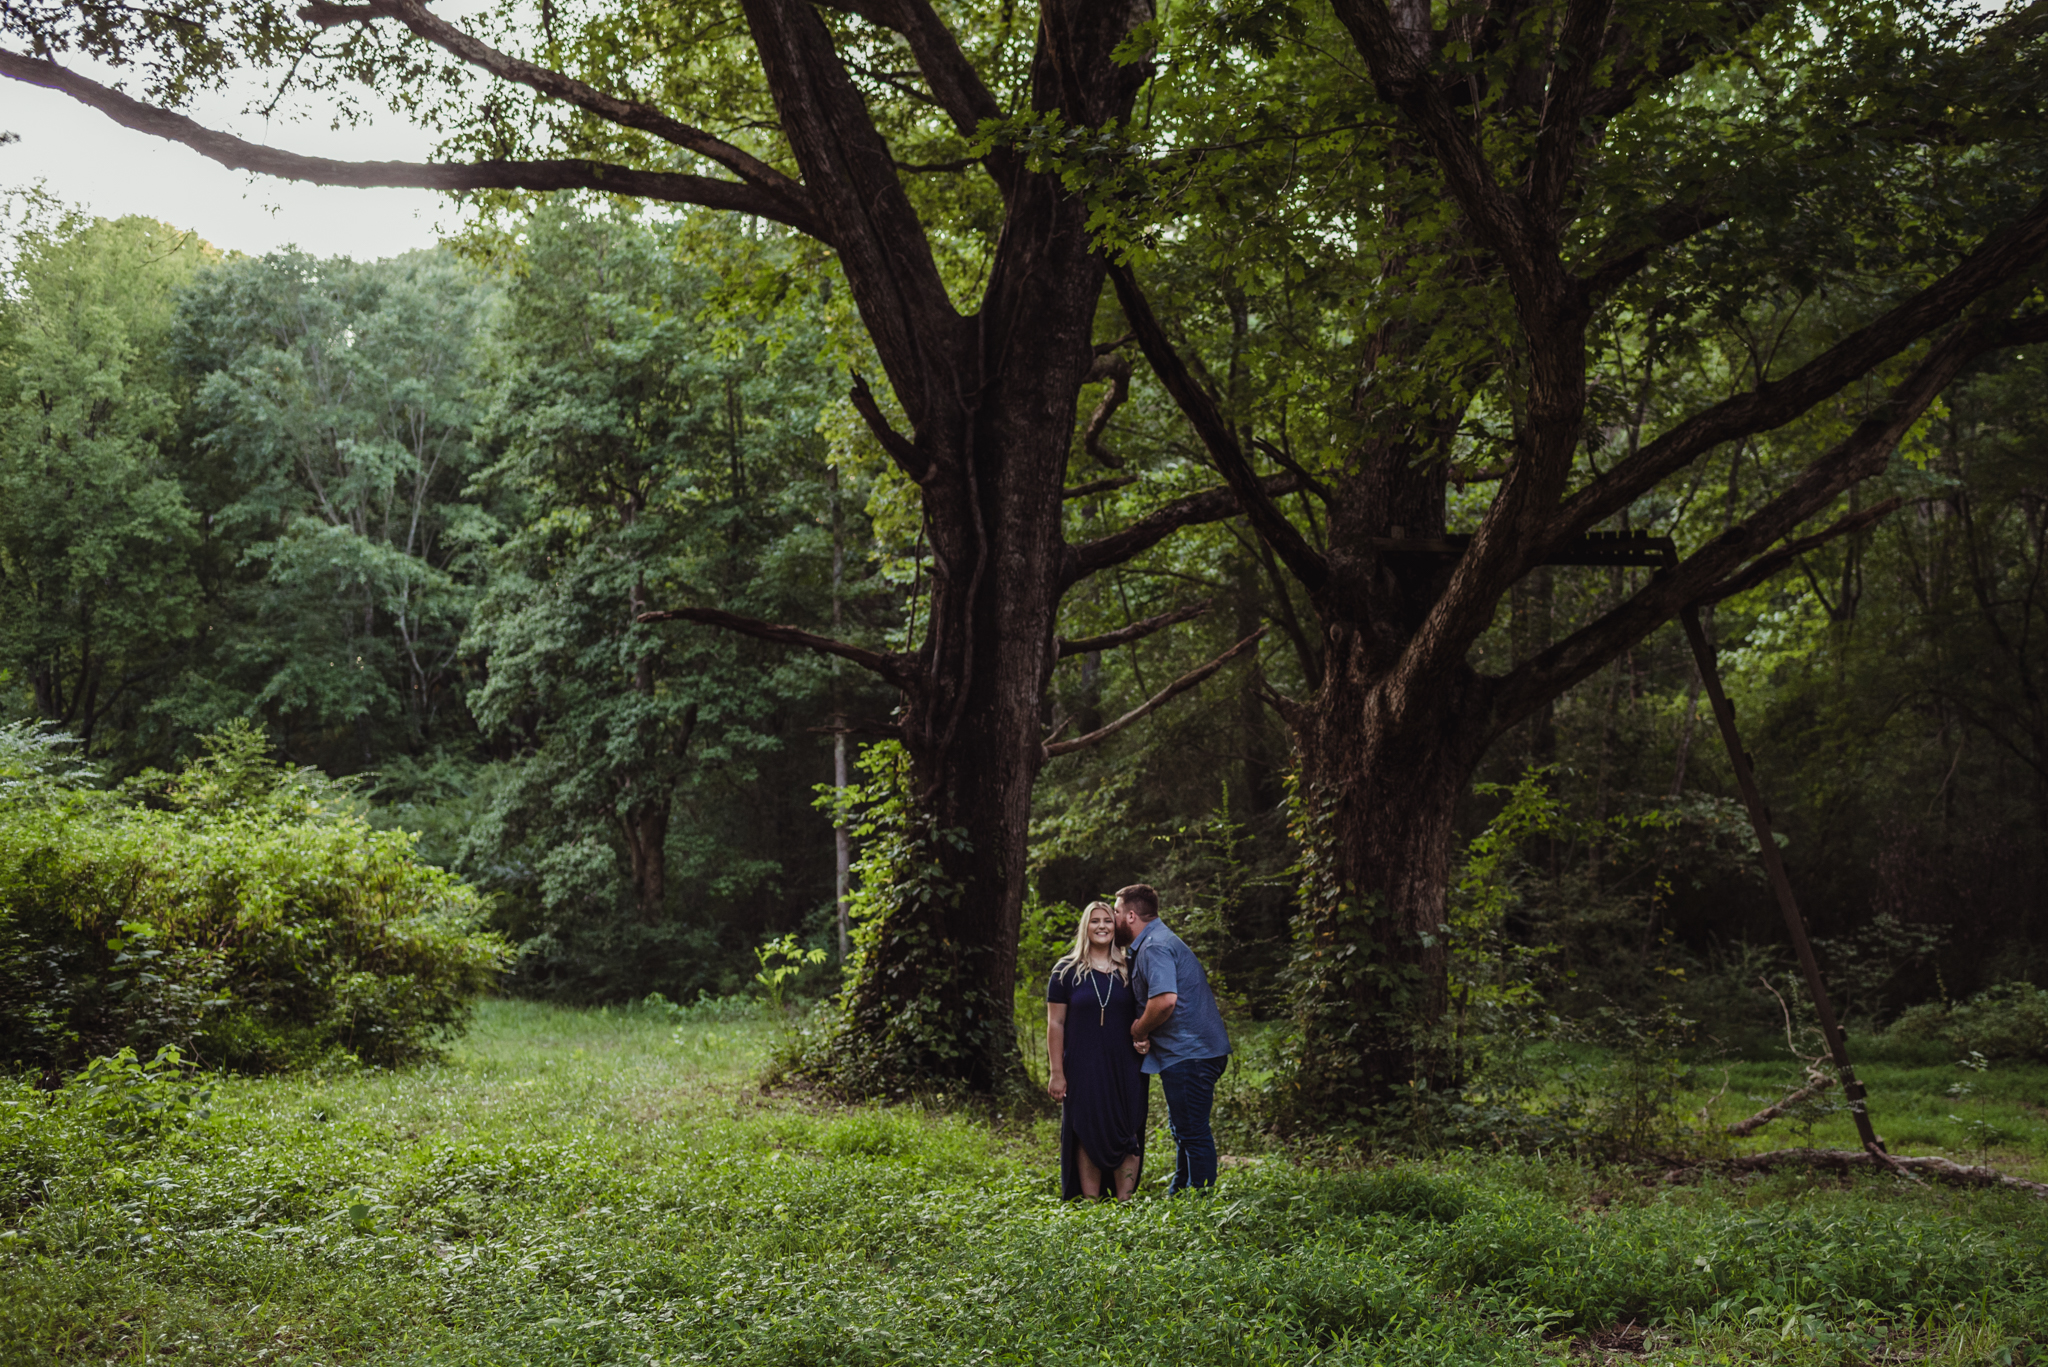 The future bride and groom kiss in the green woods at The Warren Estate for their engagement pictures with Rose Trail Images.